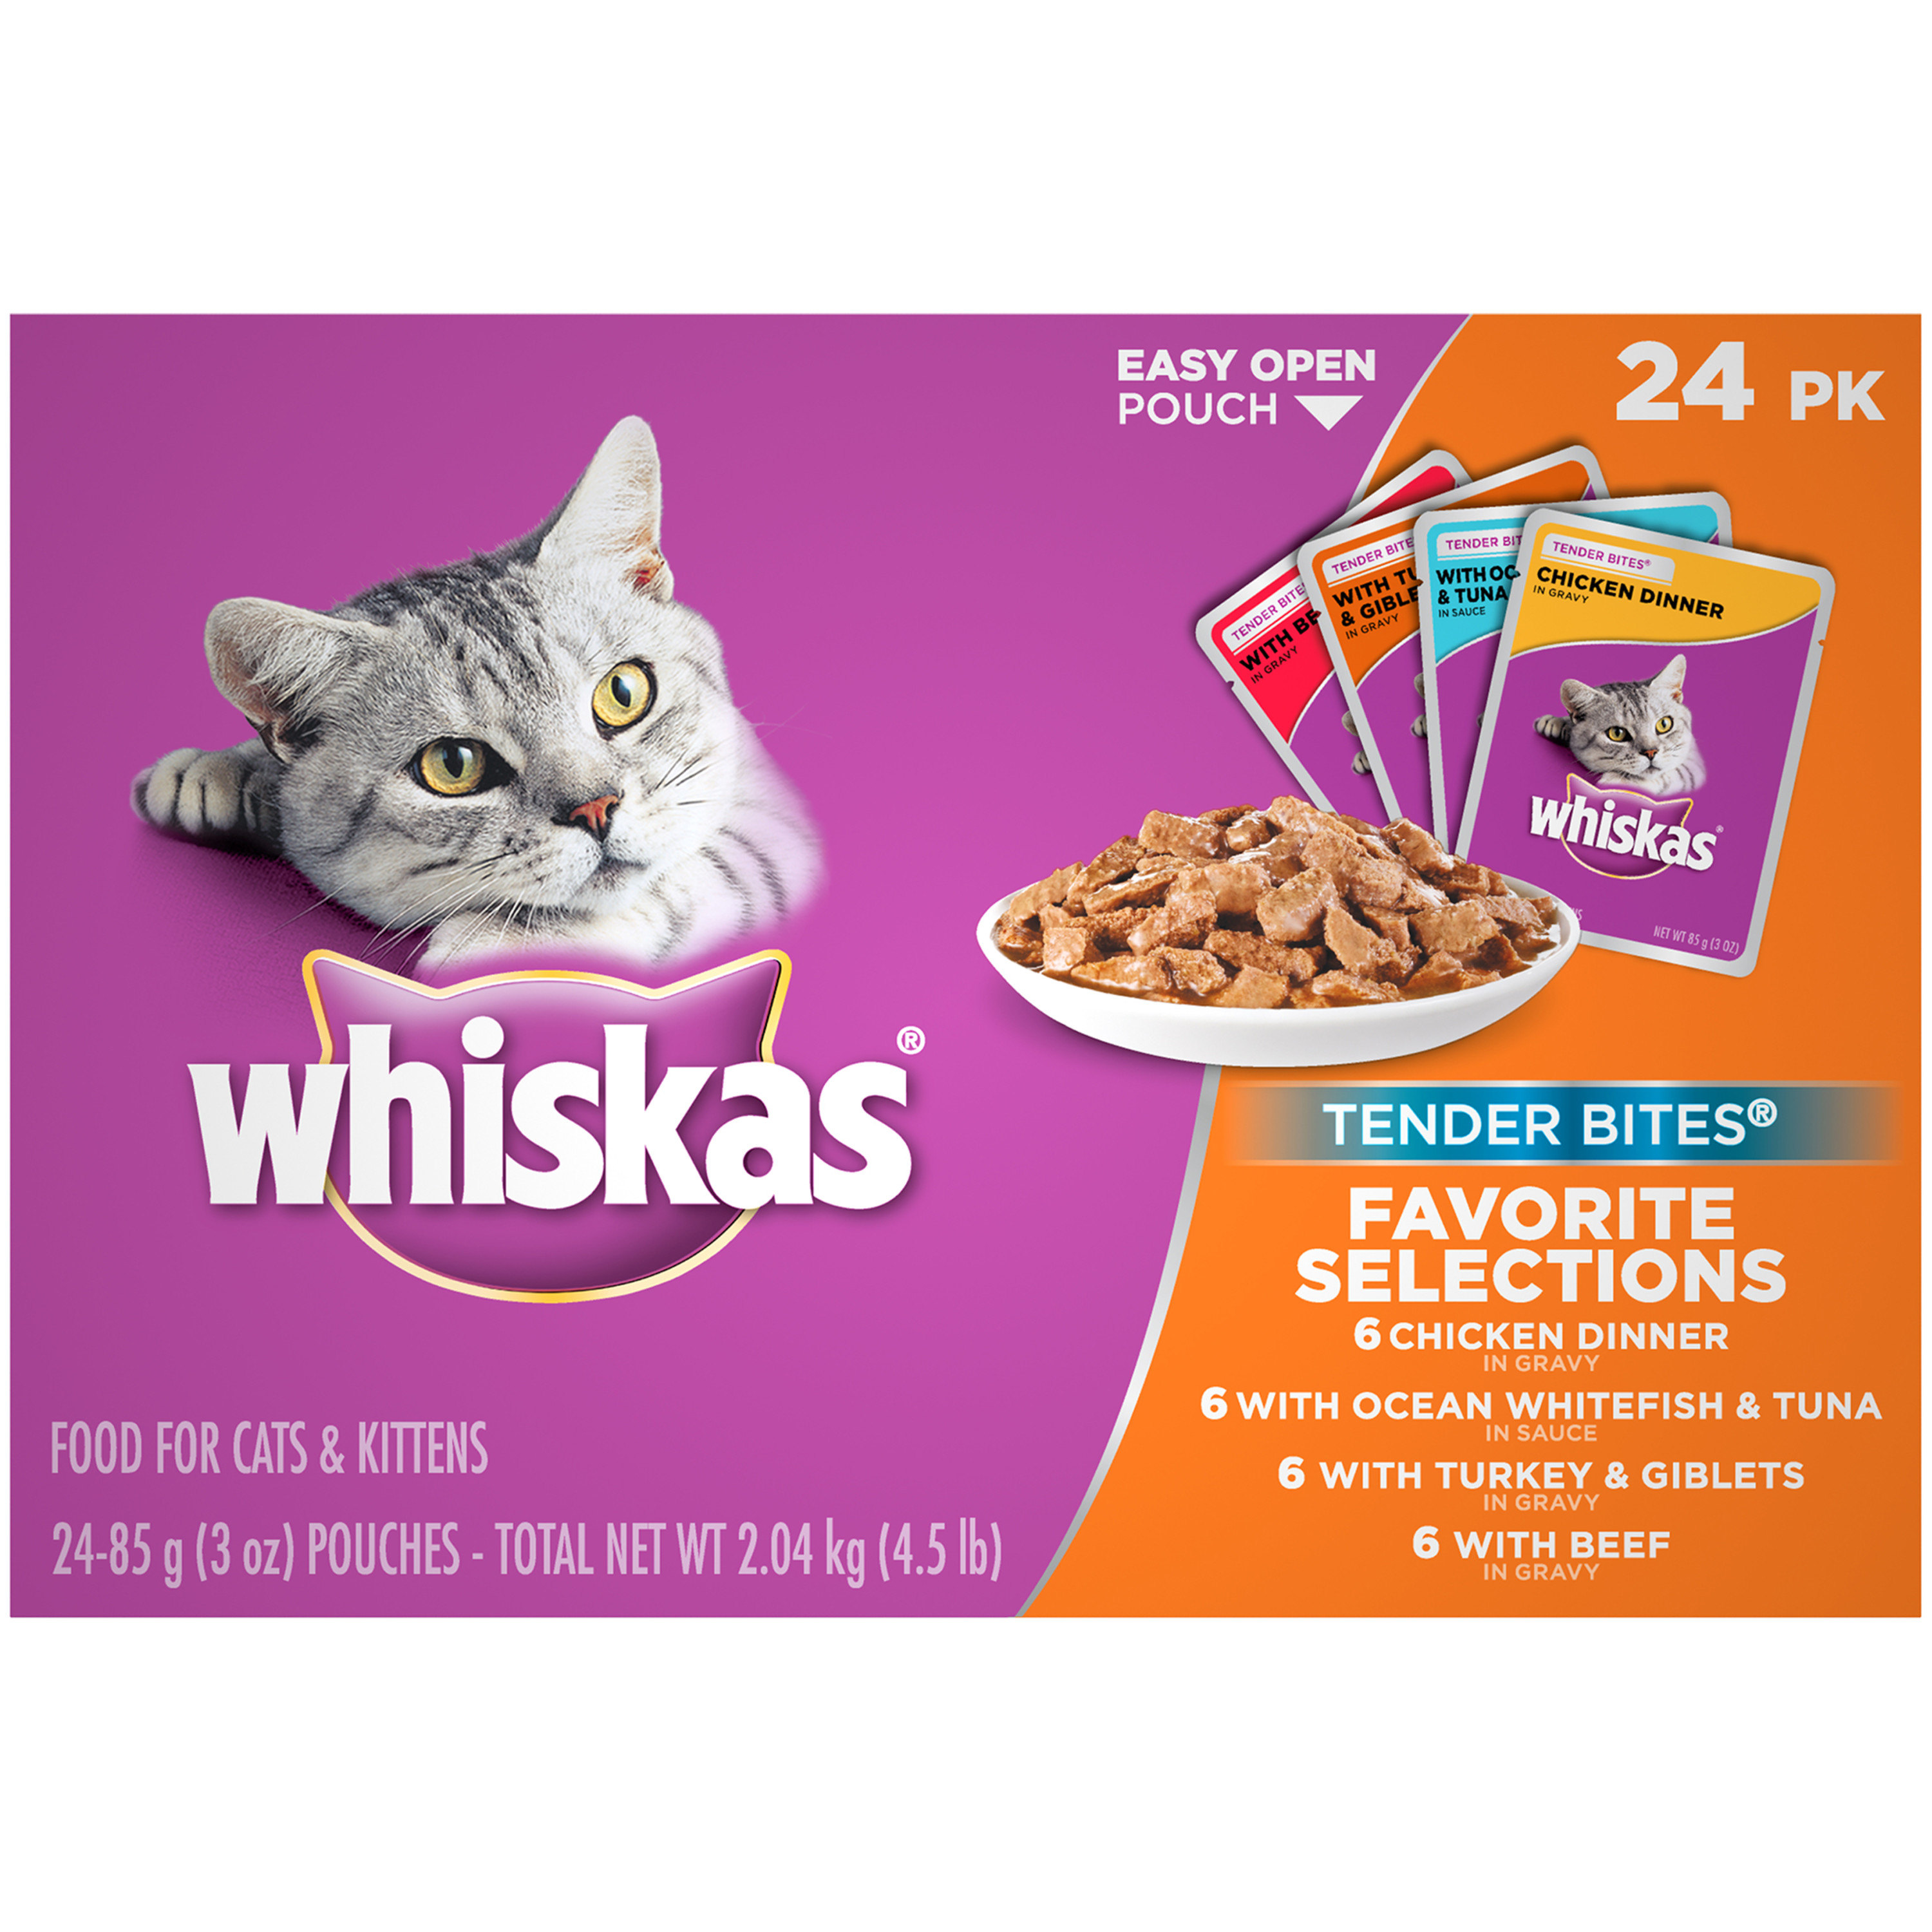 WHISKAS TENDER BITES Favorite Selections Variety Pack Wet Cat Food, (24) 3 oz. Pouches